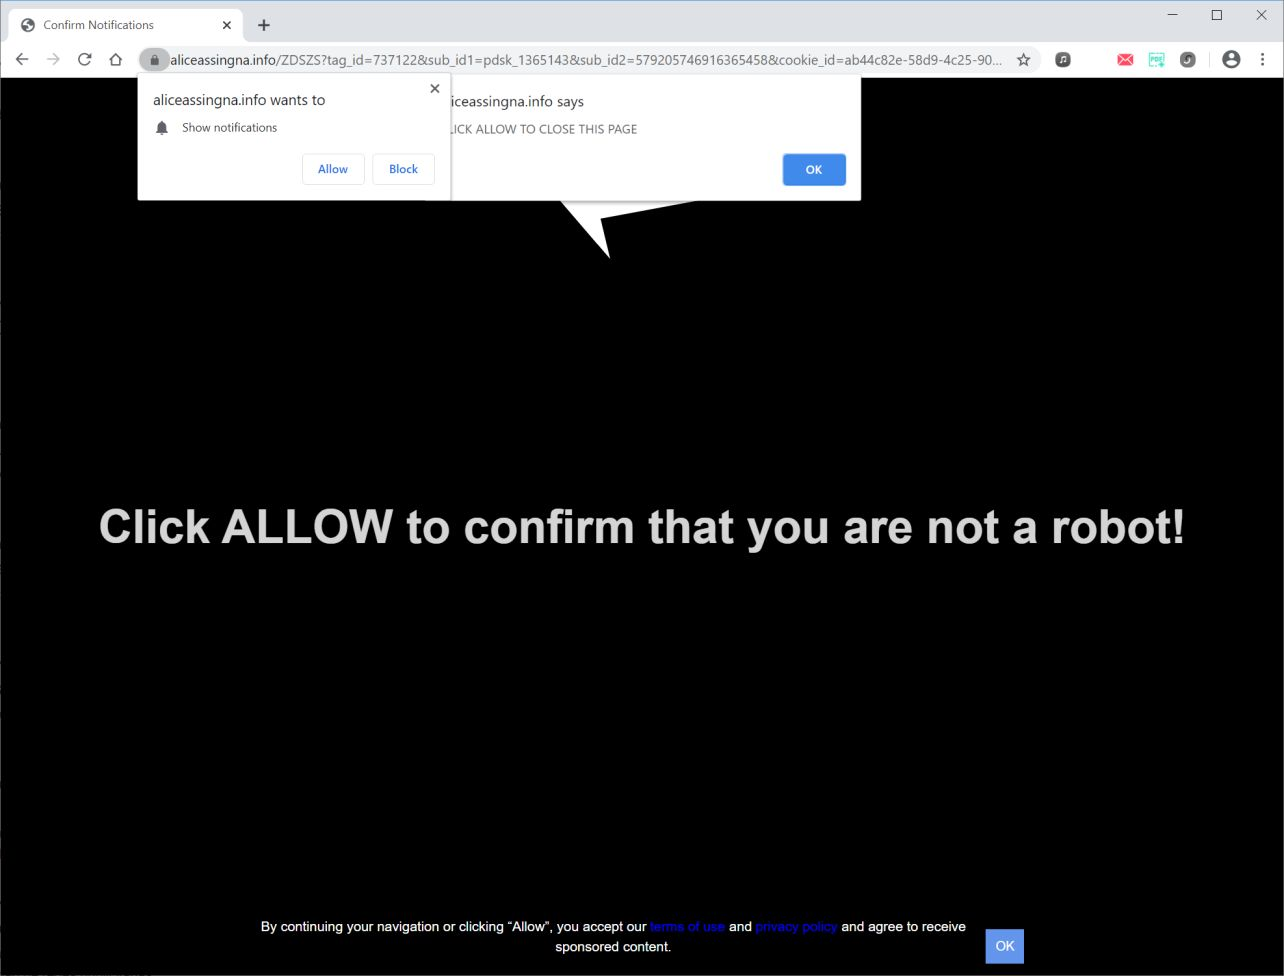 Image: Chrome browser is redirected to Aliceassingna.info